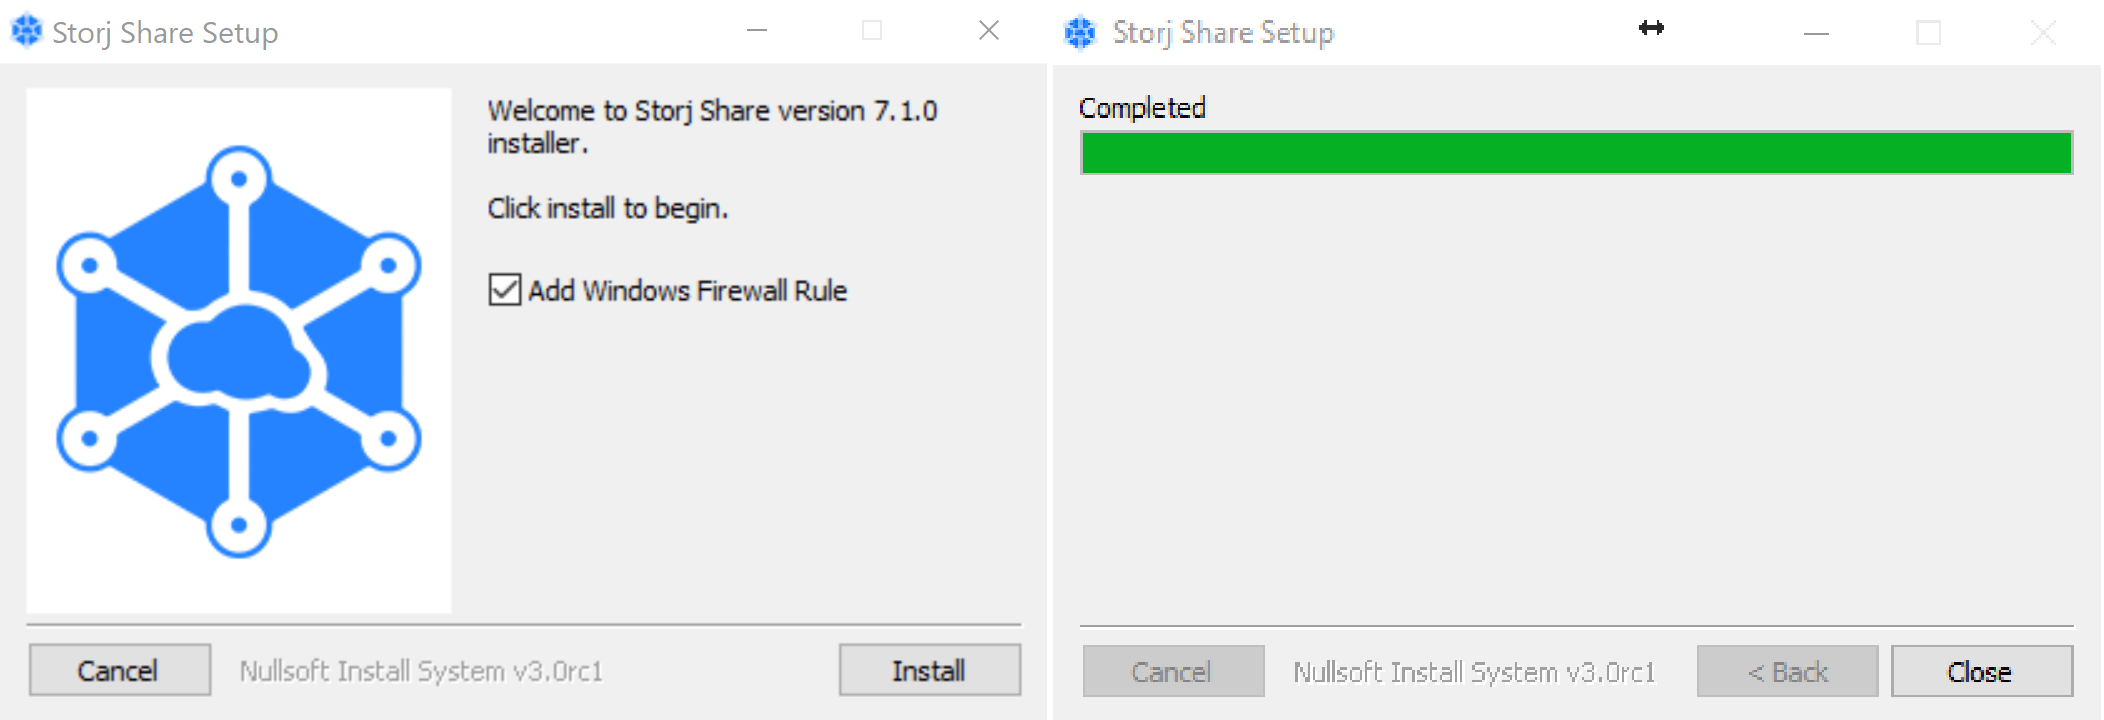 *Figure 2.3. Storj Share GUI installation.*